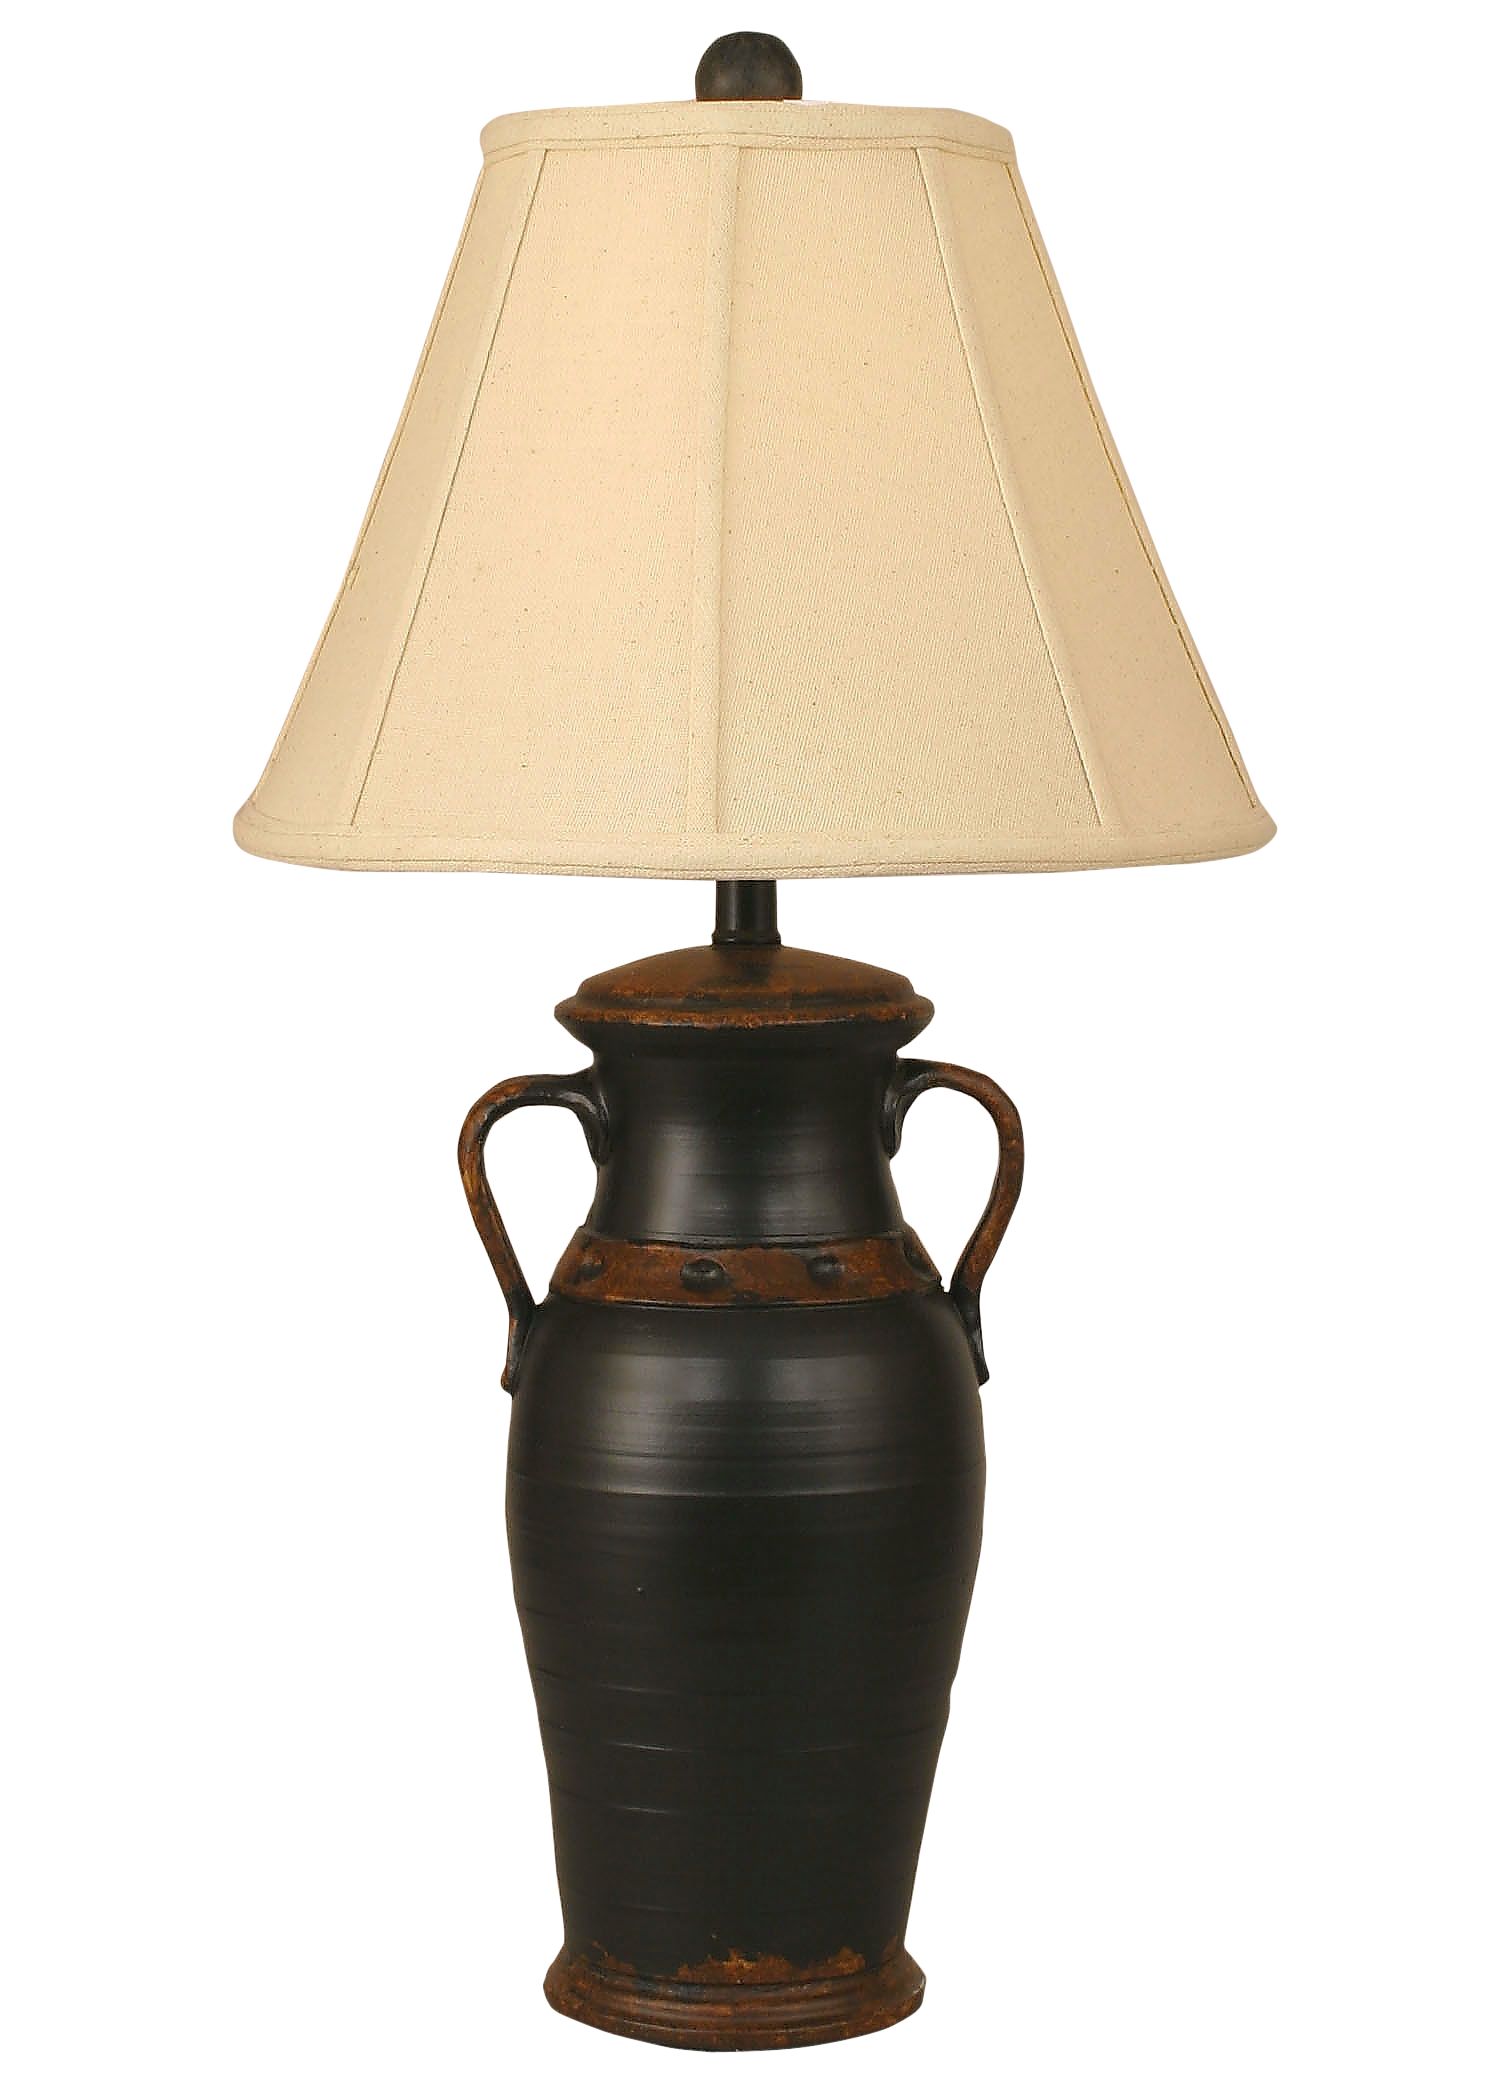 Aged Black Two Handled Vase Table Lamp - Coast Lamp Shop